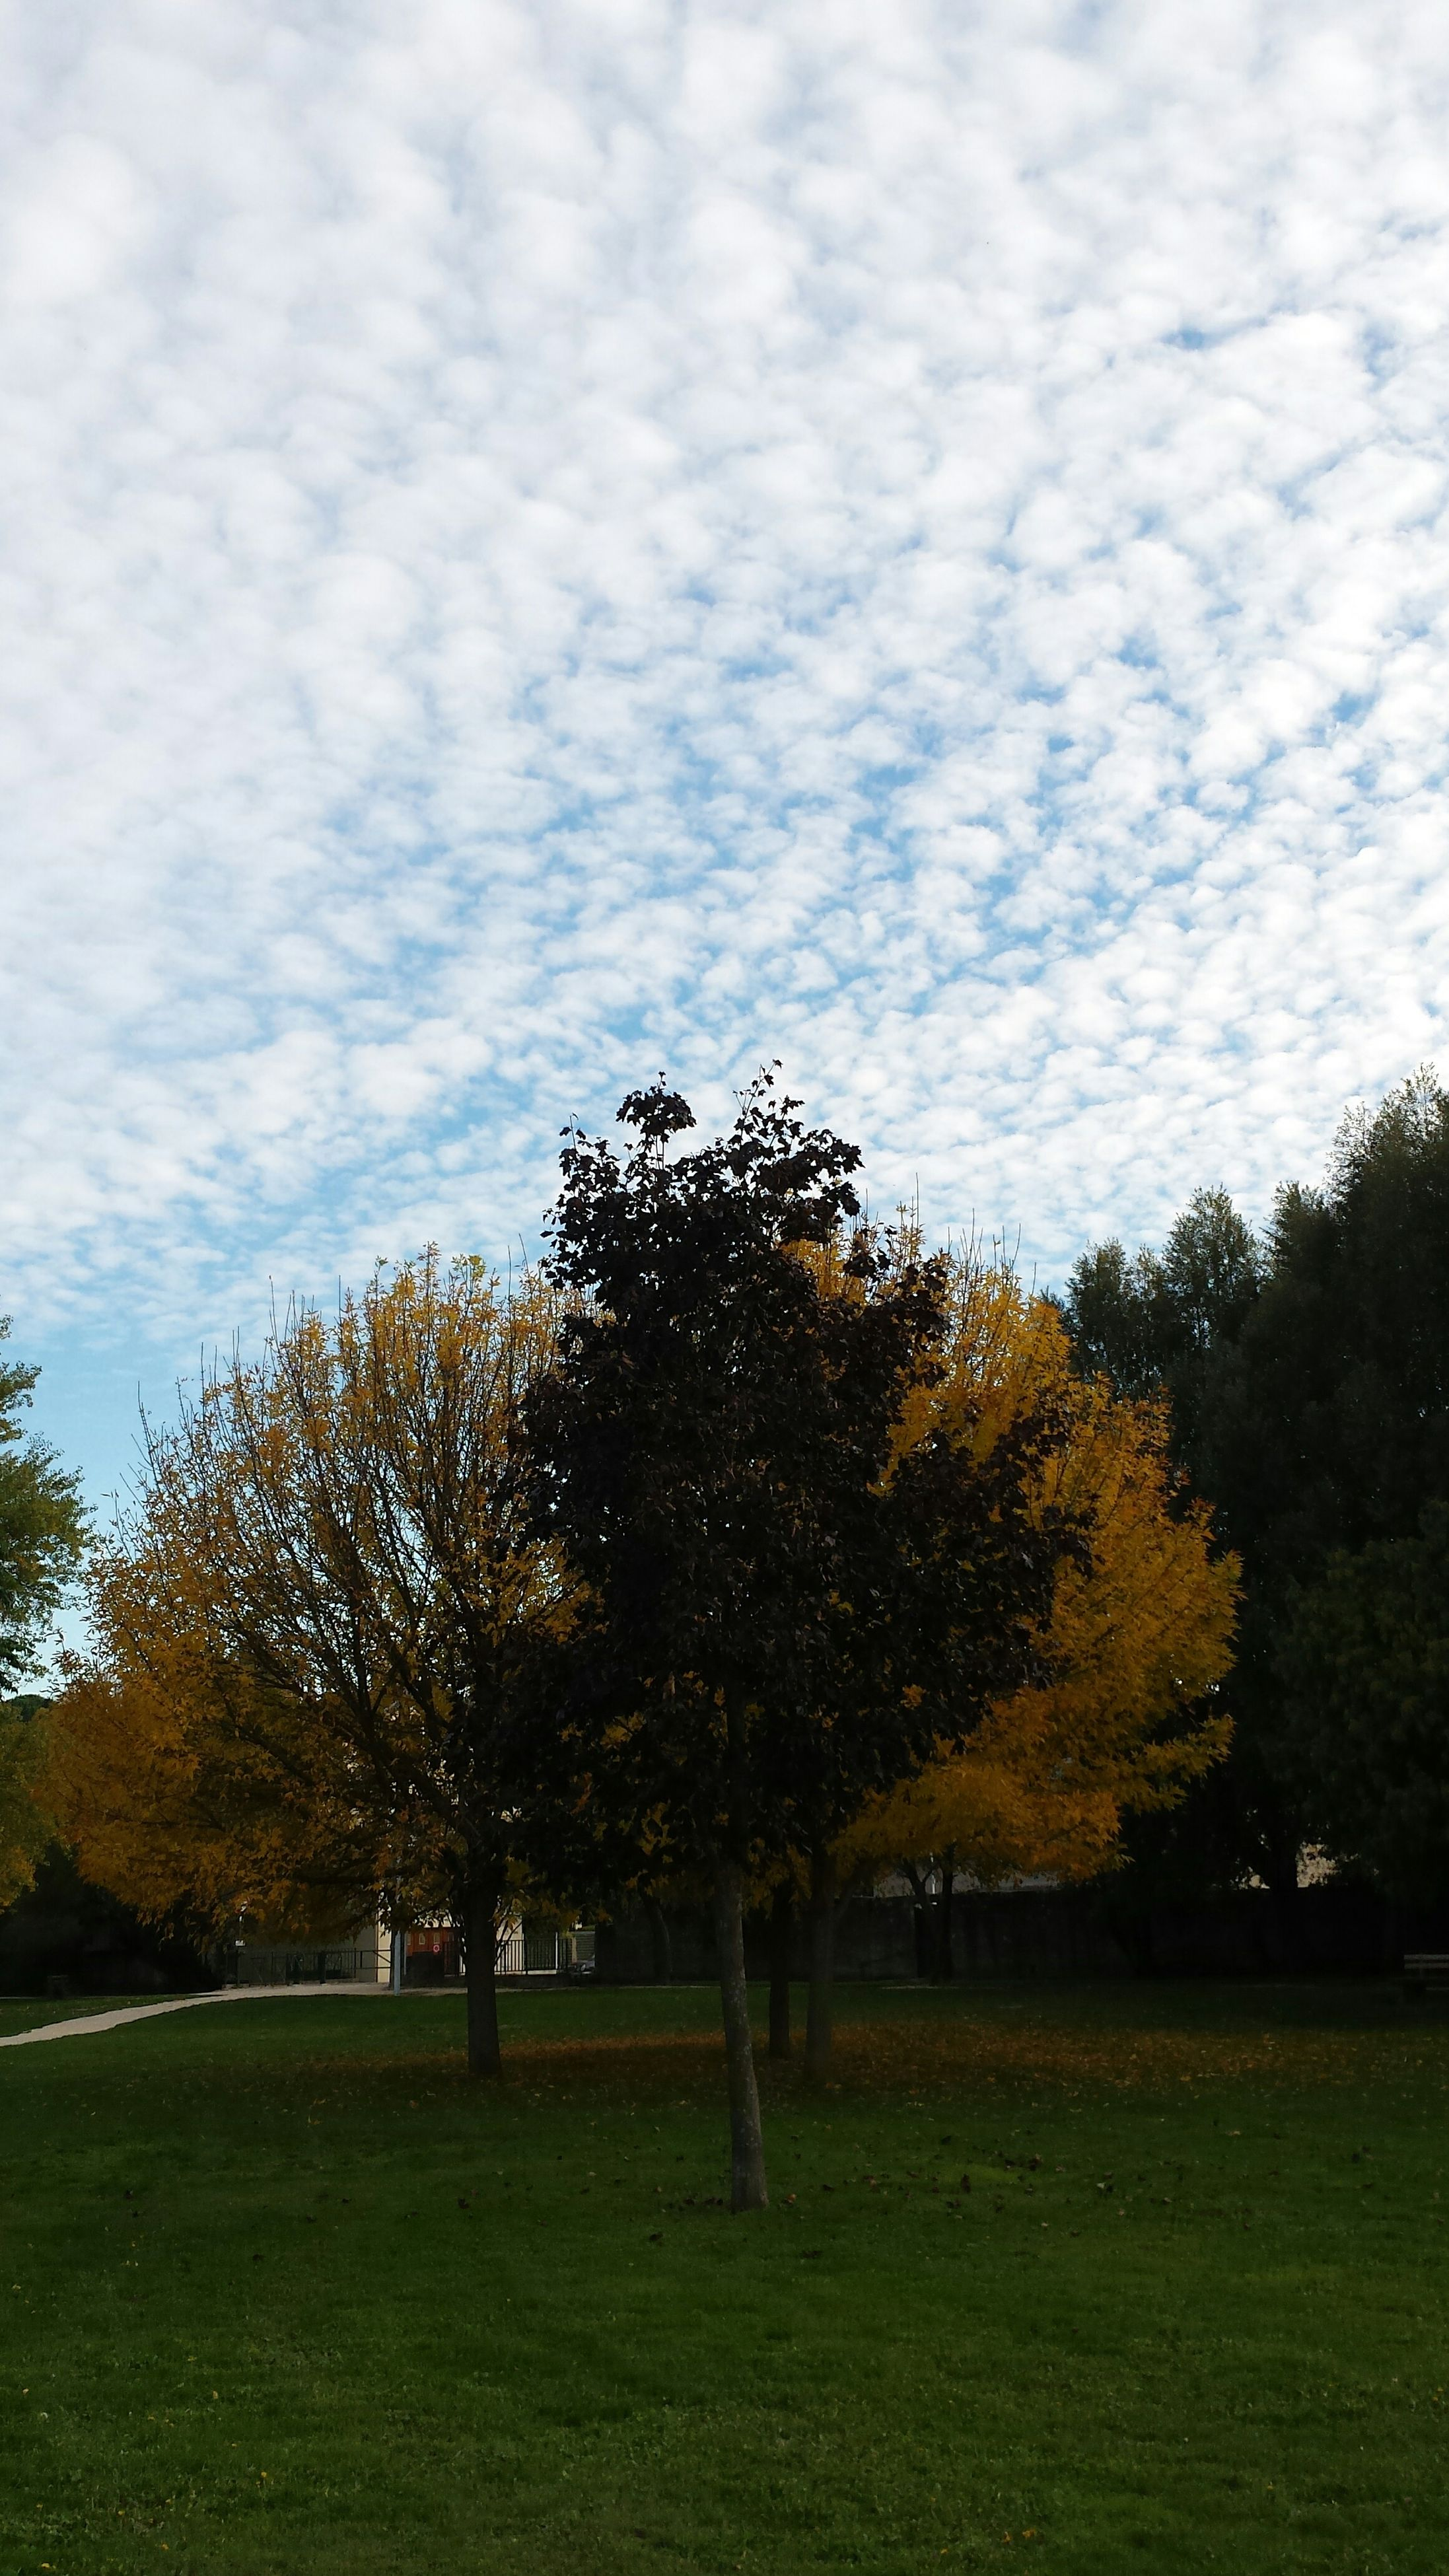 tree, sky, tranquility, tranquil scene, cloud - sky, grass, beauty in nature, autumn, scenics, landscape, nature, field, growth, change, cloudy, park - man made space, cloud, branch, grassy, season